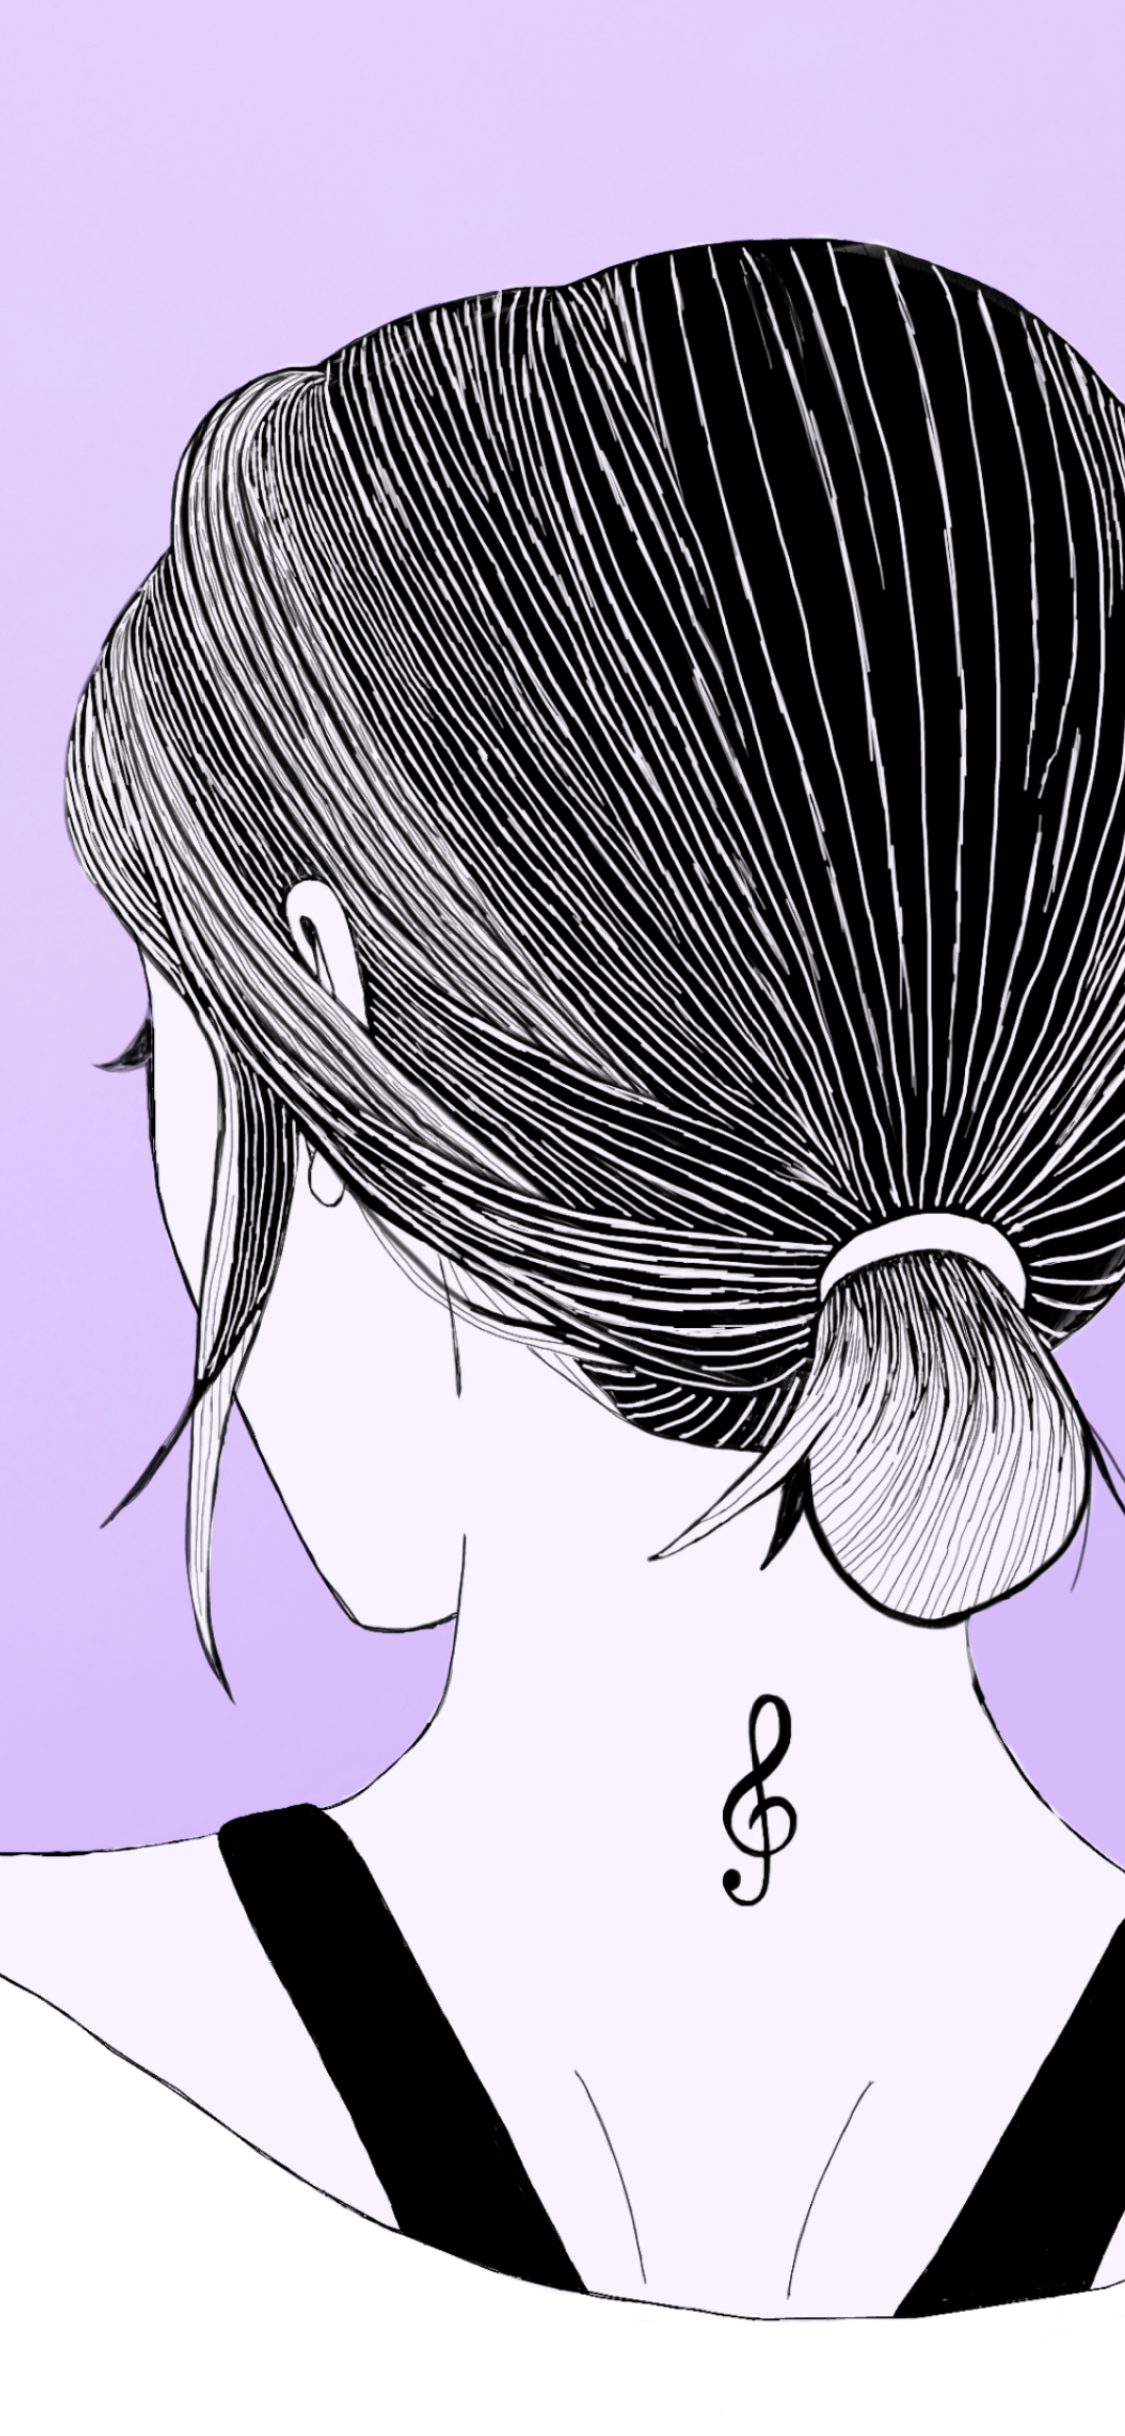 Illustration of girl facing away with treble clef tattoo on her neck